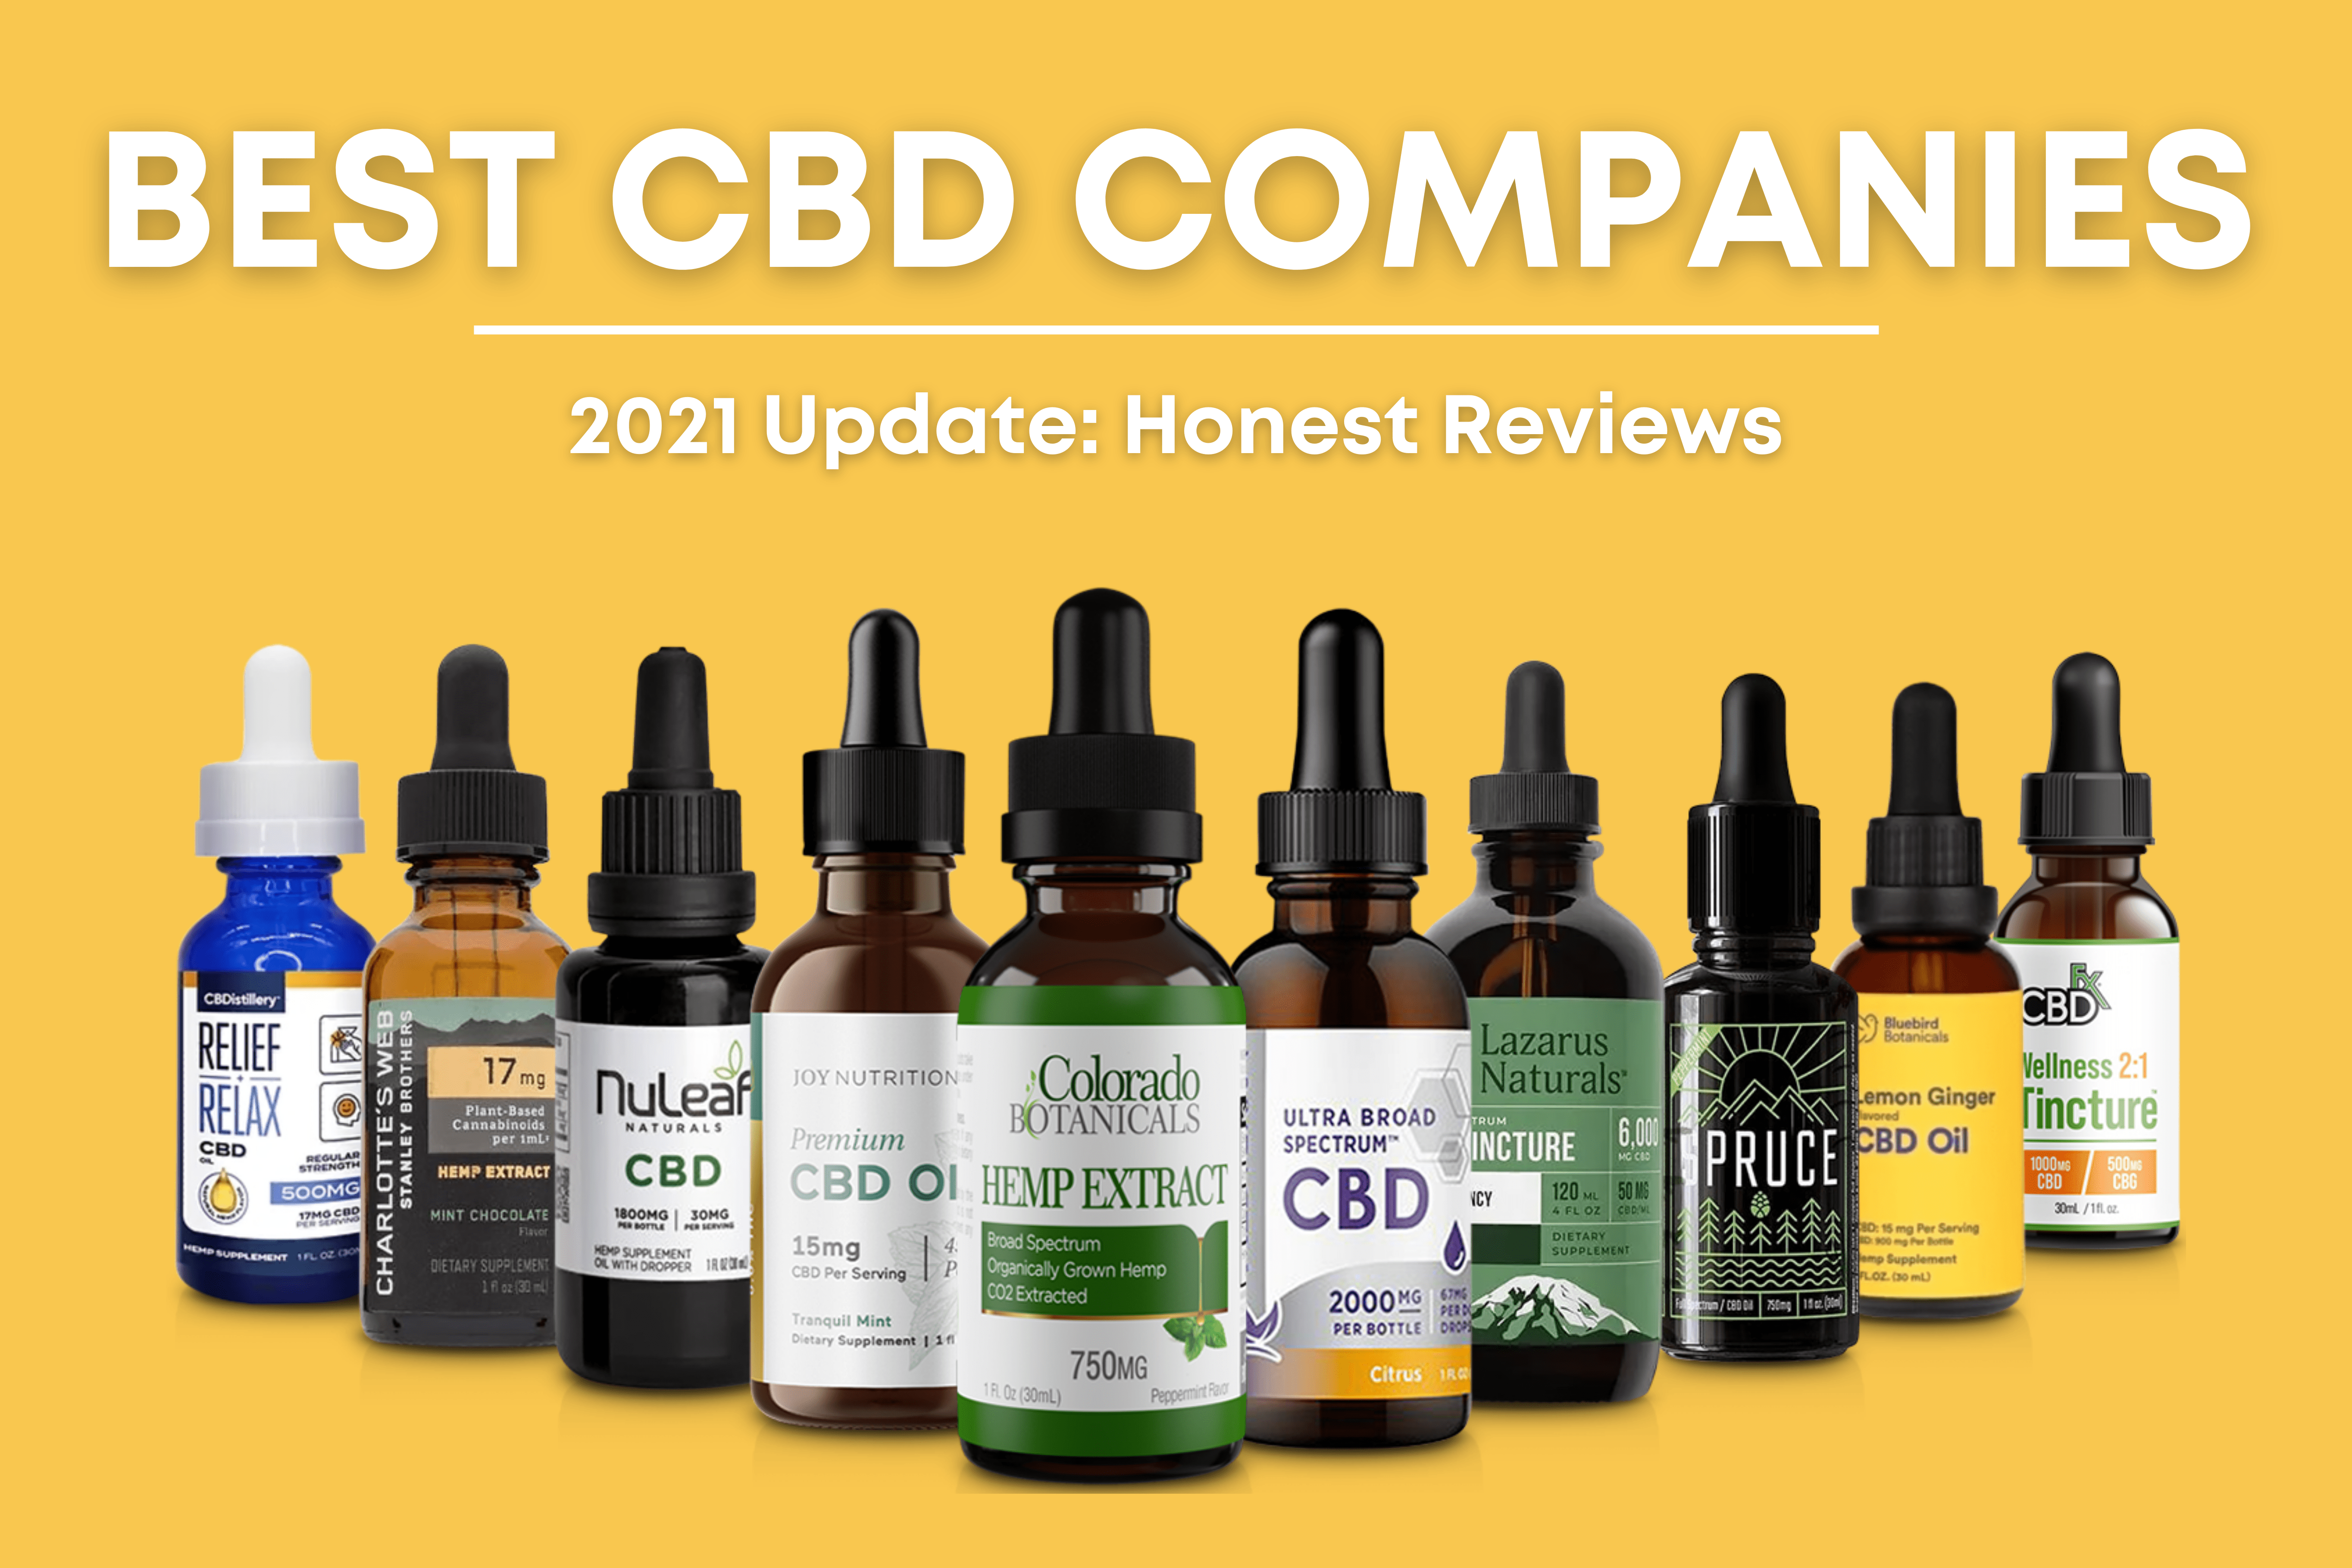 10 Best CBD Companies to Buy From in 2021: Honest Reviews & Guide